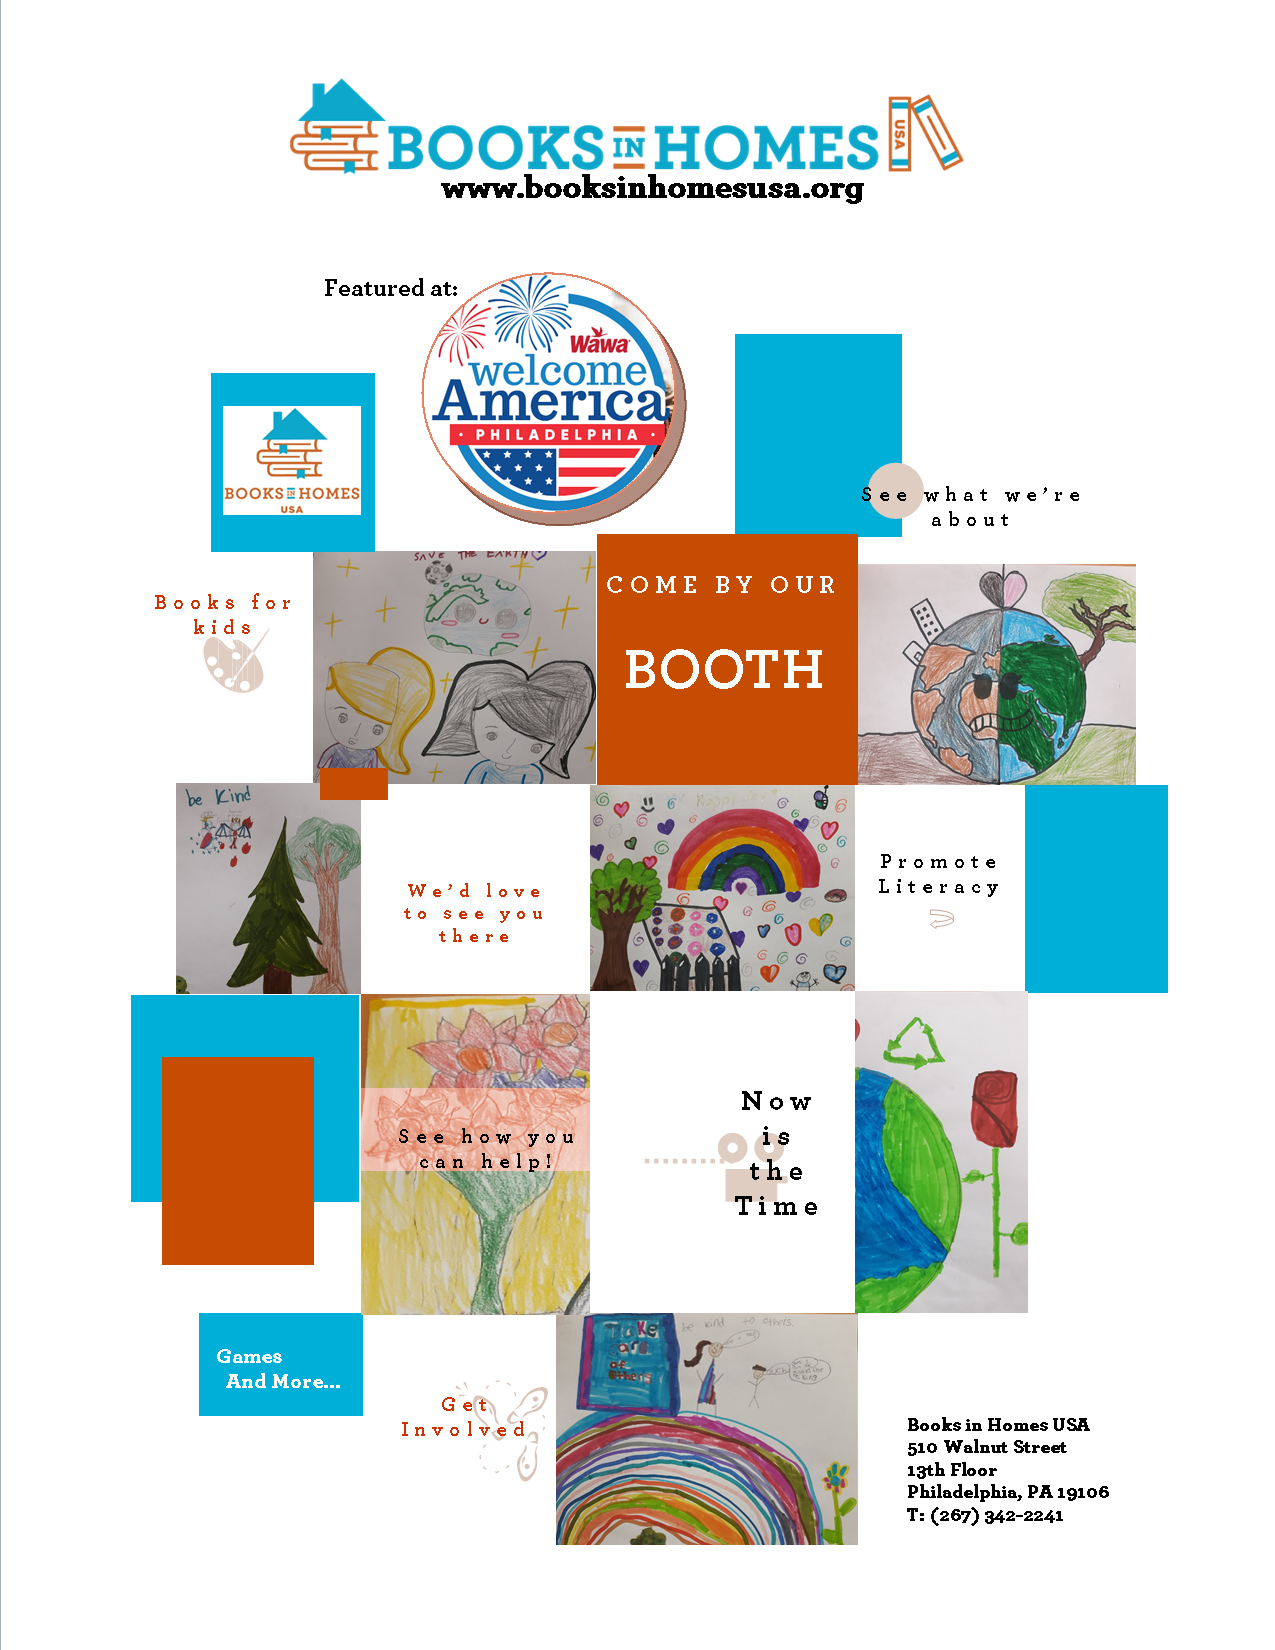 Free Book Giveaways at Welcome America - Philadelphia